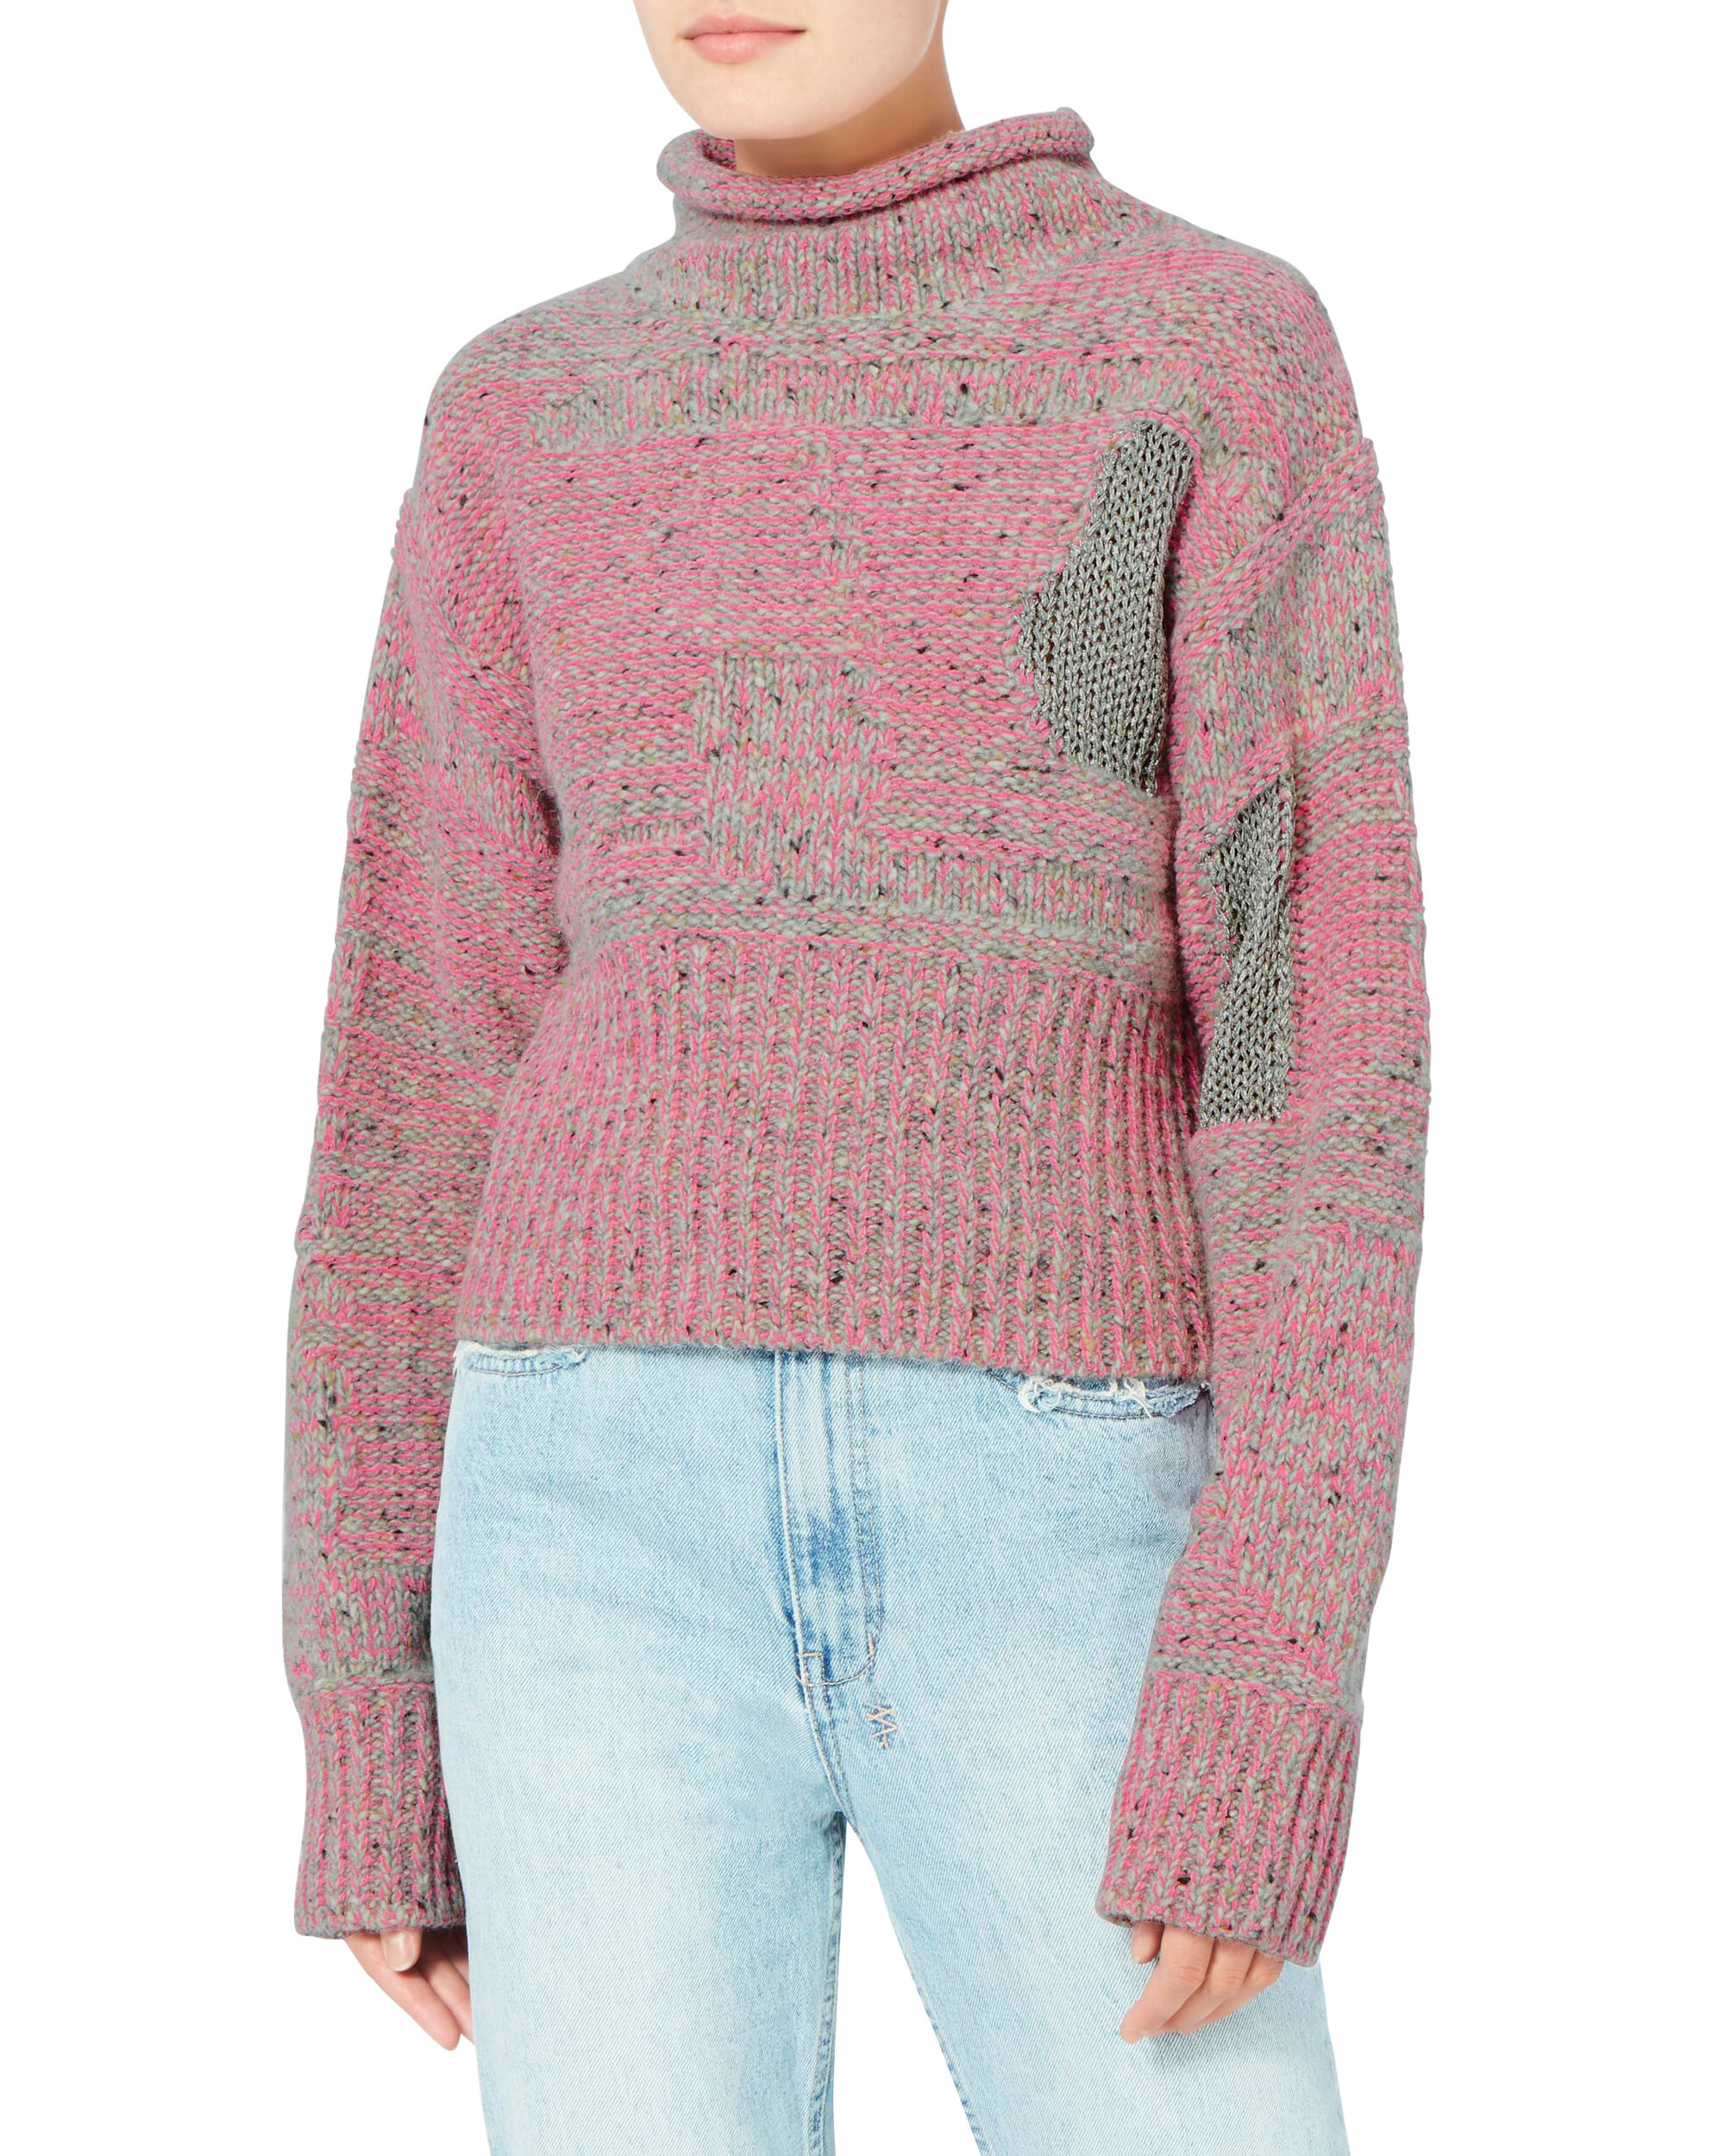 Plaited Tweed Cropped Pullover Sweater, PINK, hi-res